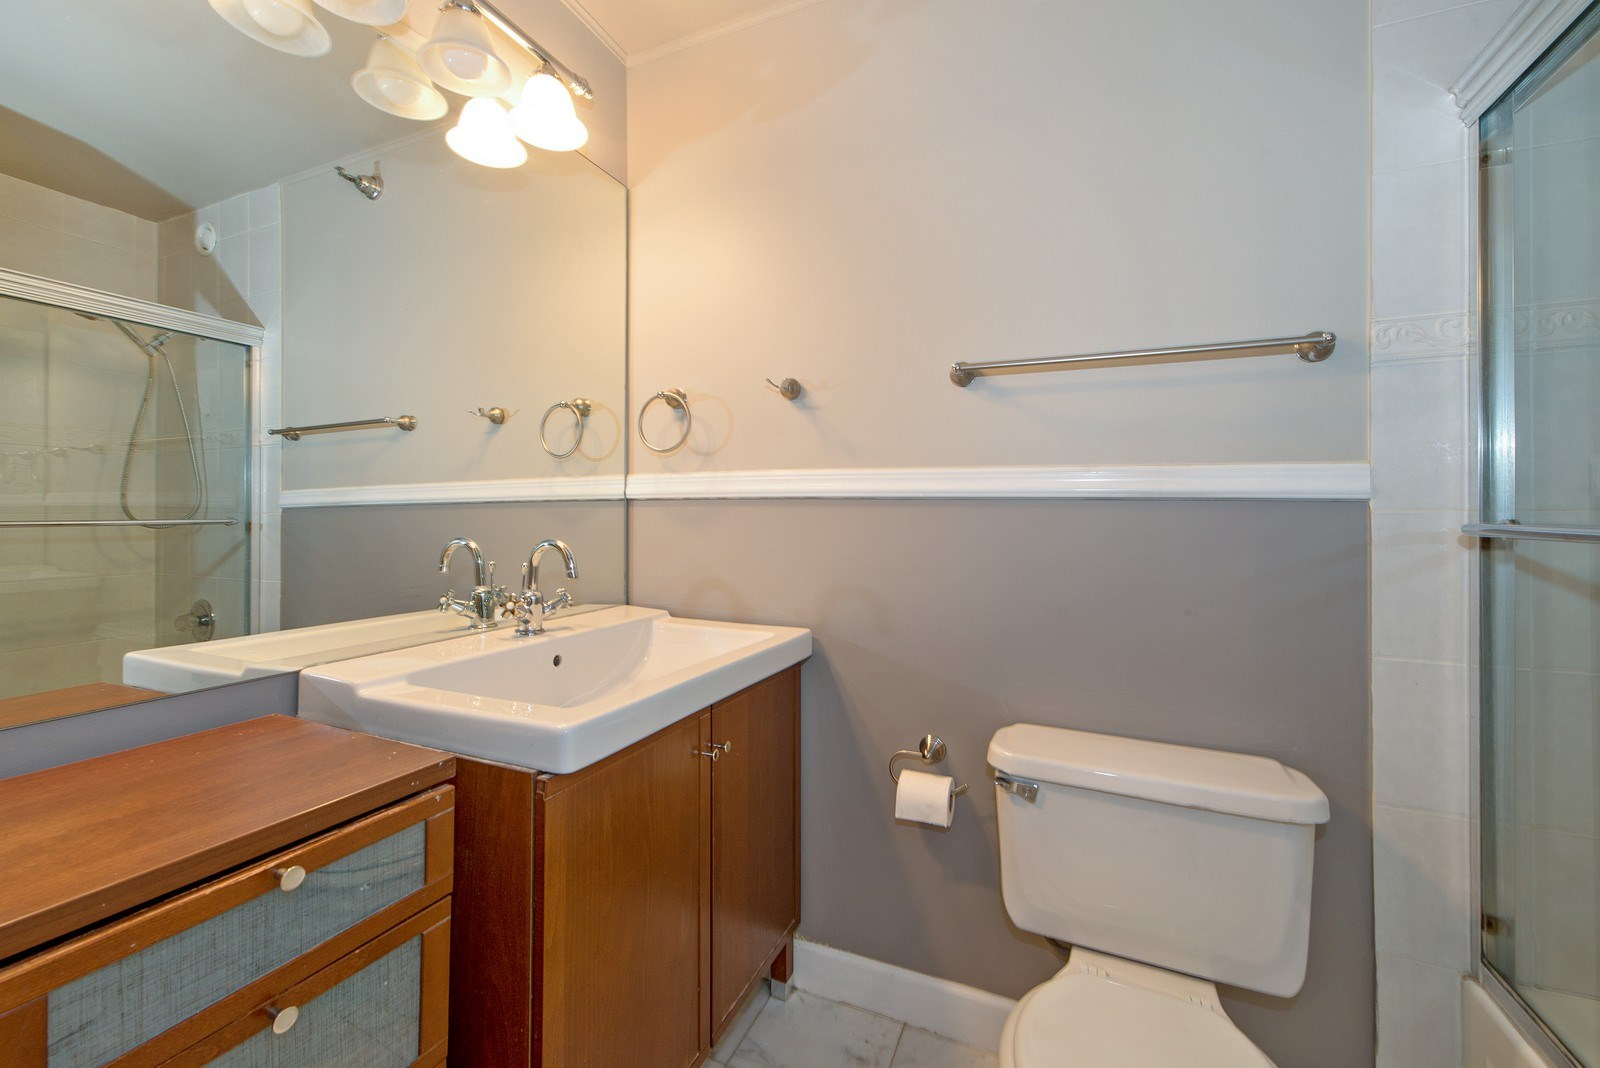 Real Estate Photography - 70 W Huron St, 807, Chicago, IL, 60654 - Bathroom